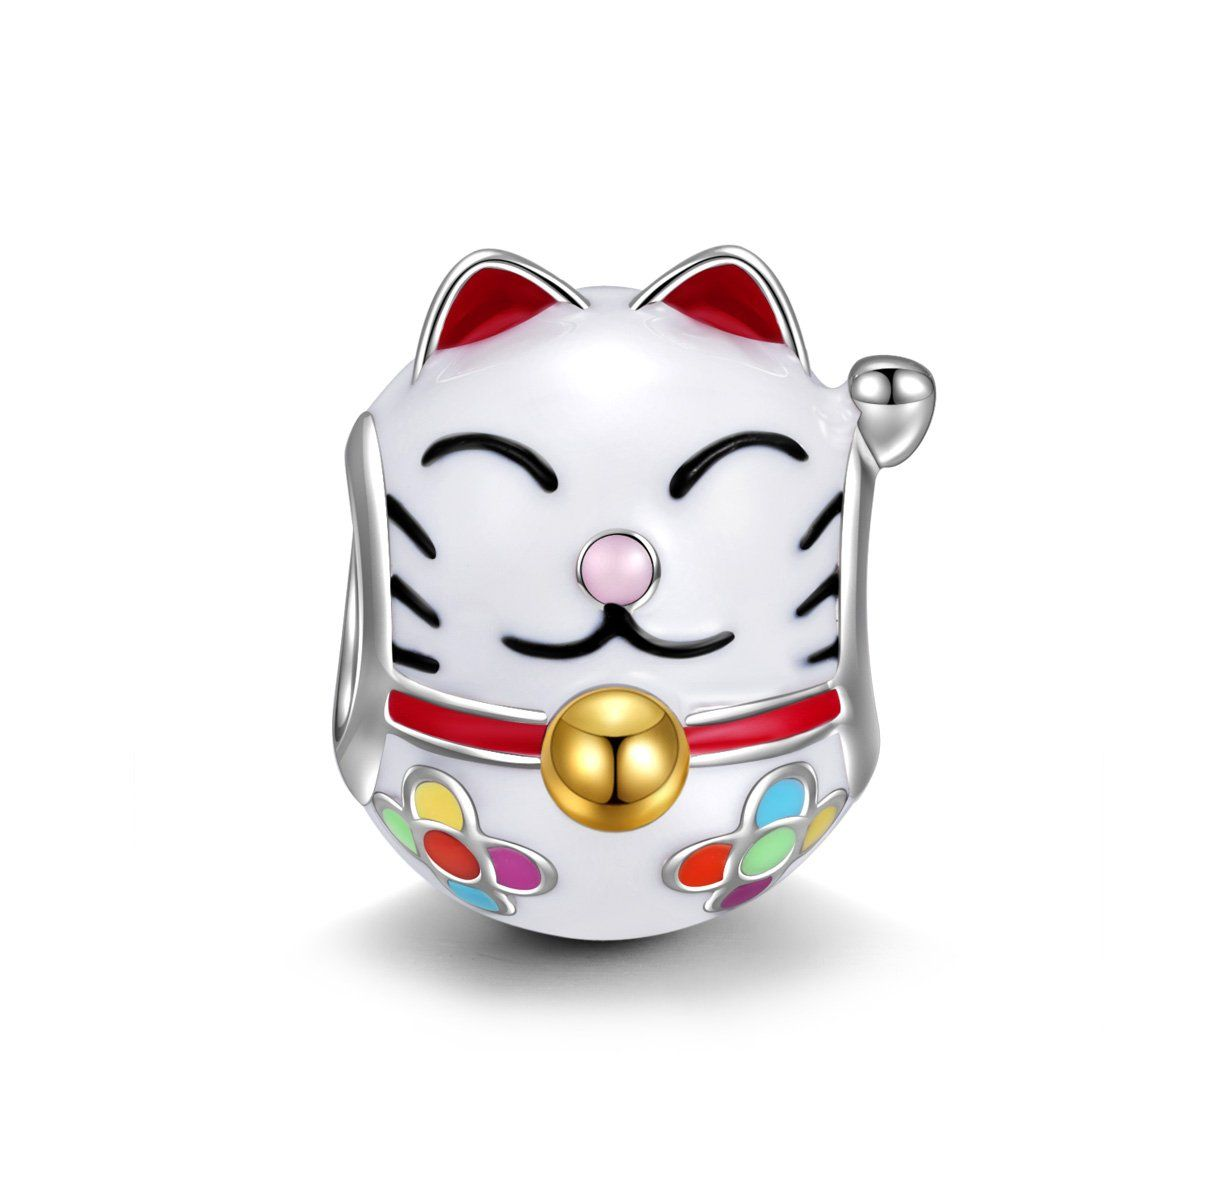 Ninaqueen 925 Sterling Silver Enamel Japan Lucky Cat Charms Fit